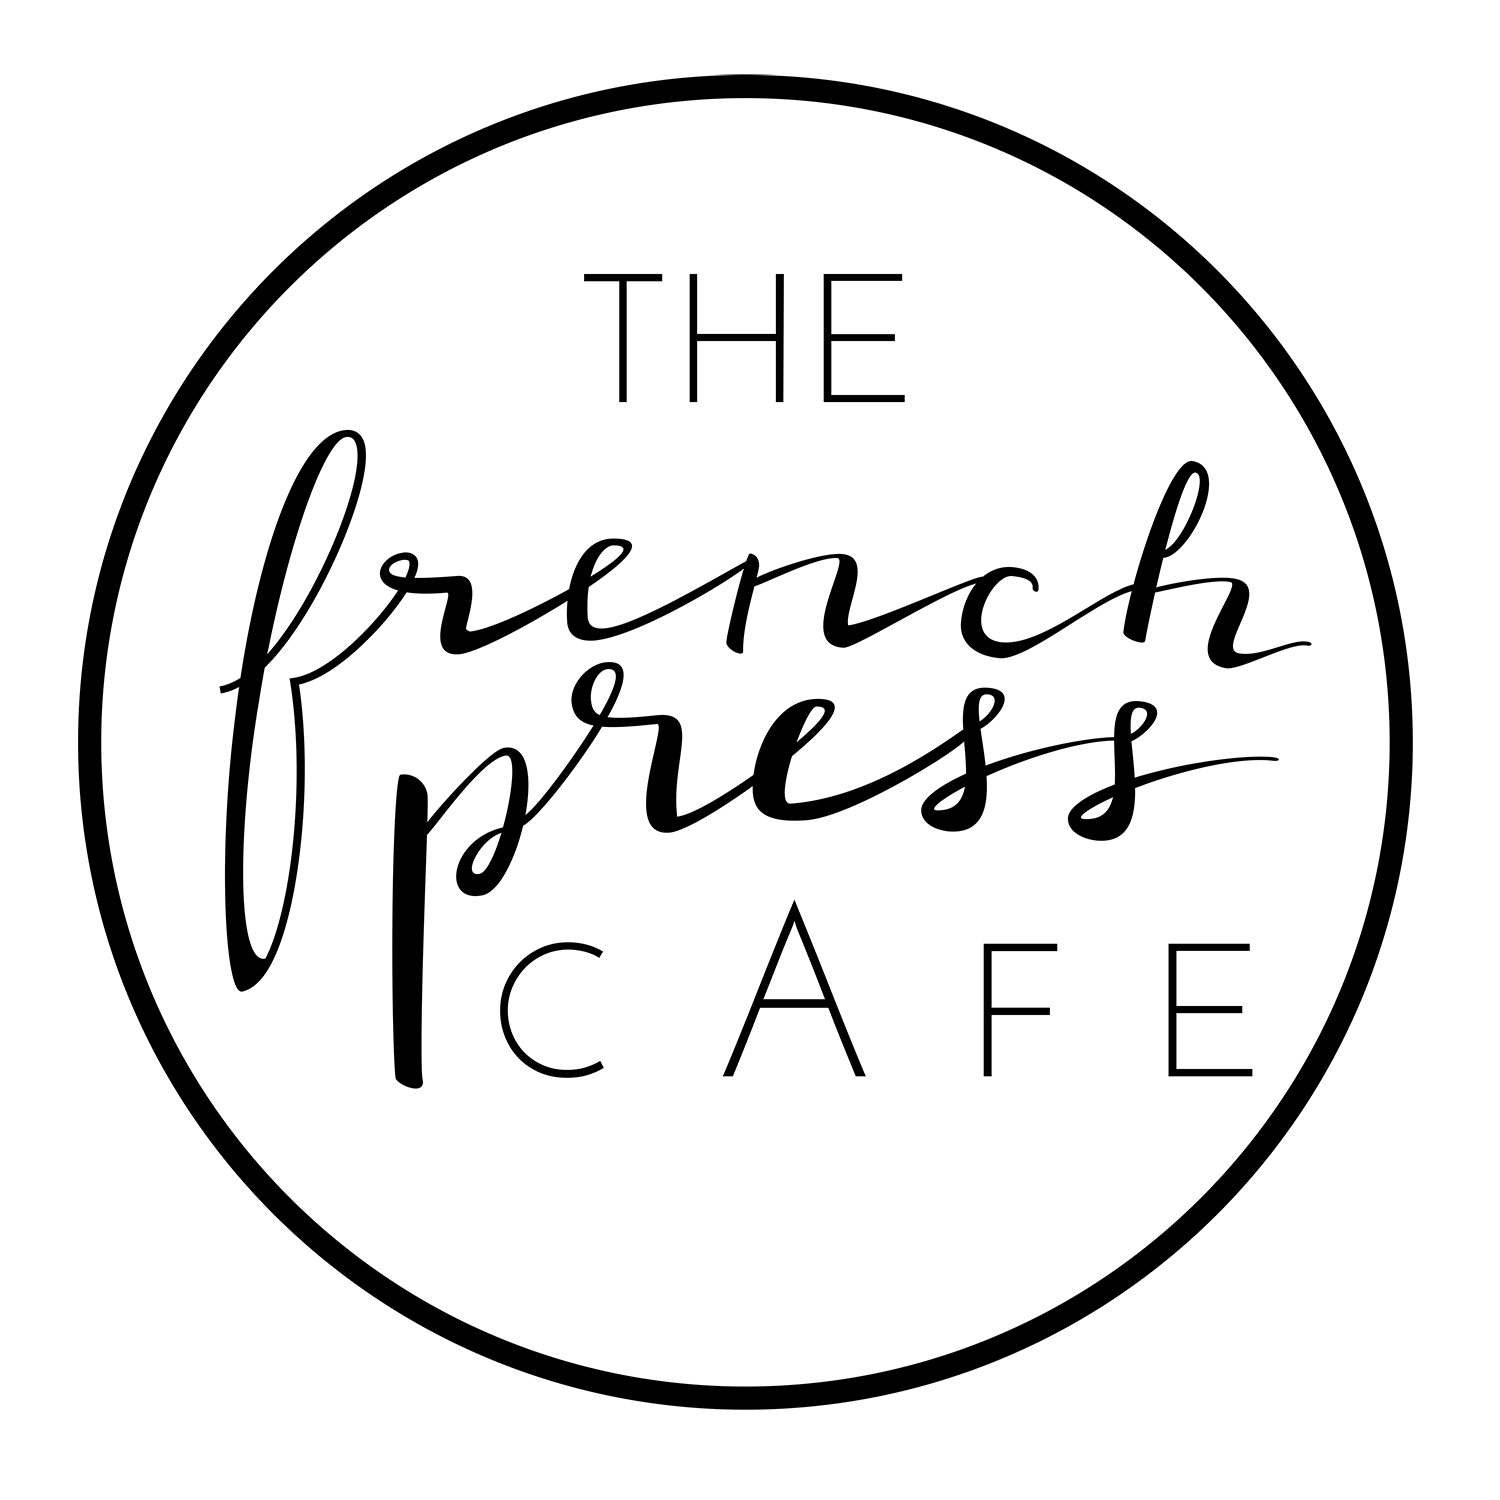 frenchpresscafe_fictional.jpg